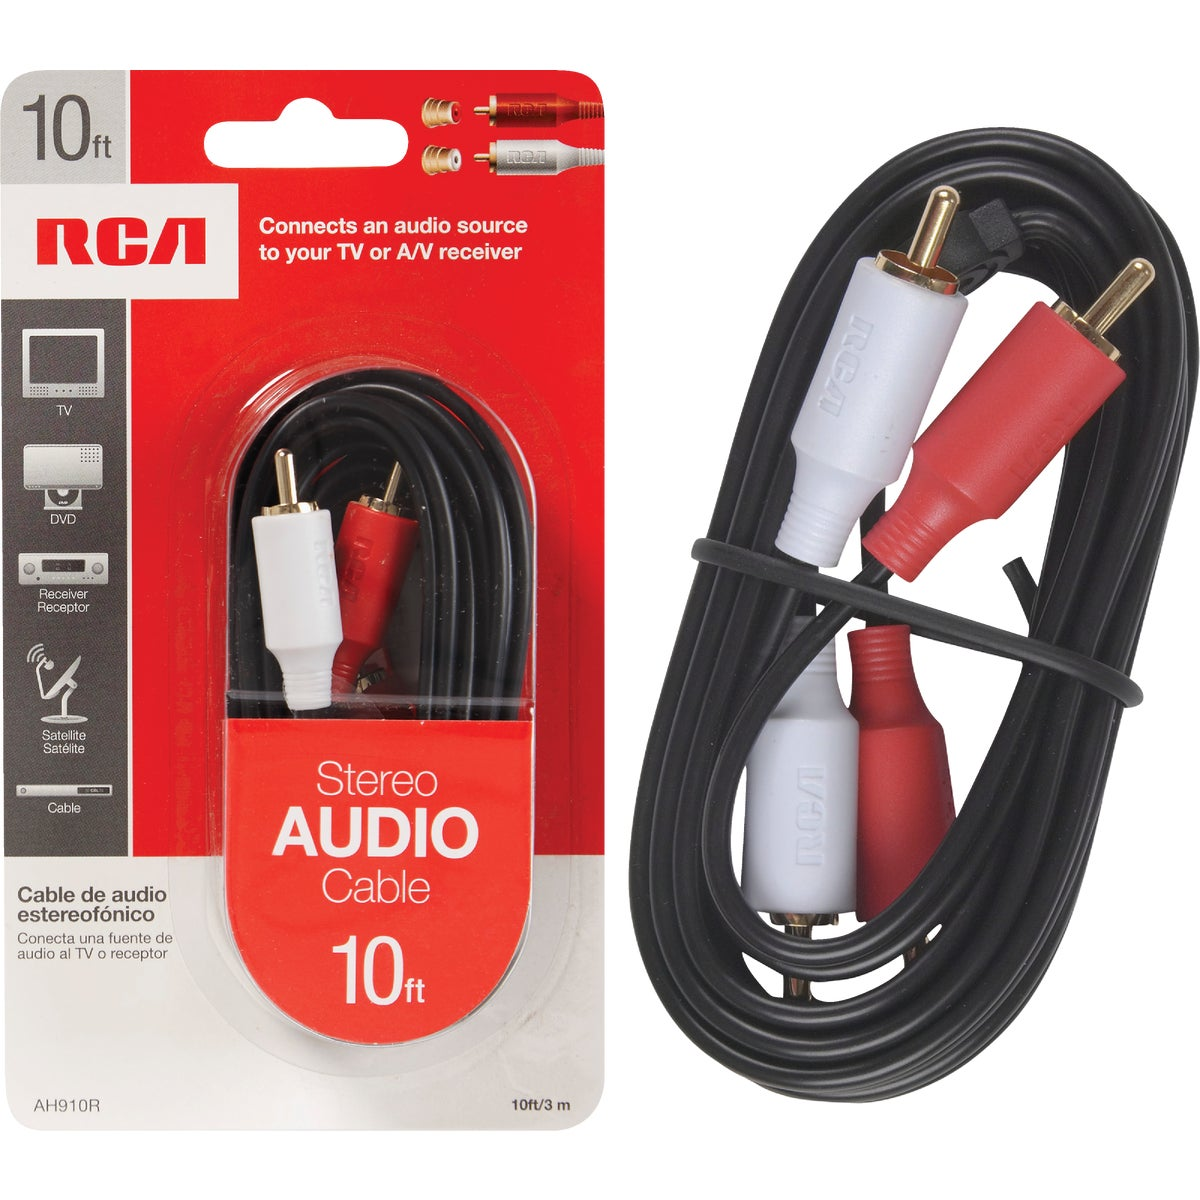 Audiovox Accessories 10' STEREO CABLE AH910NV